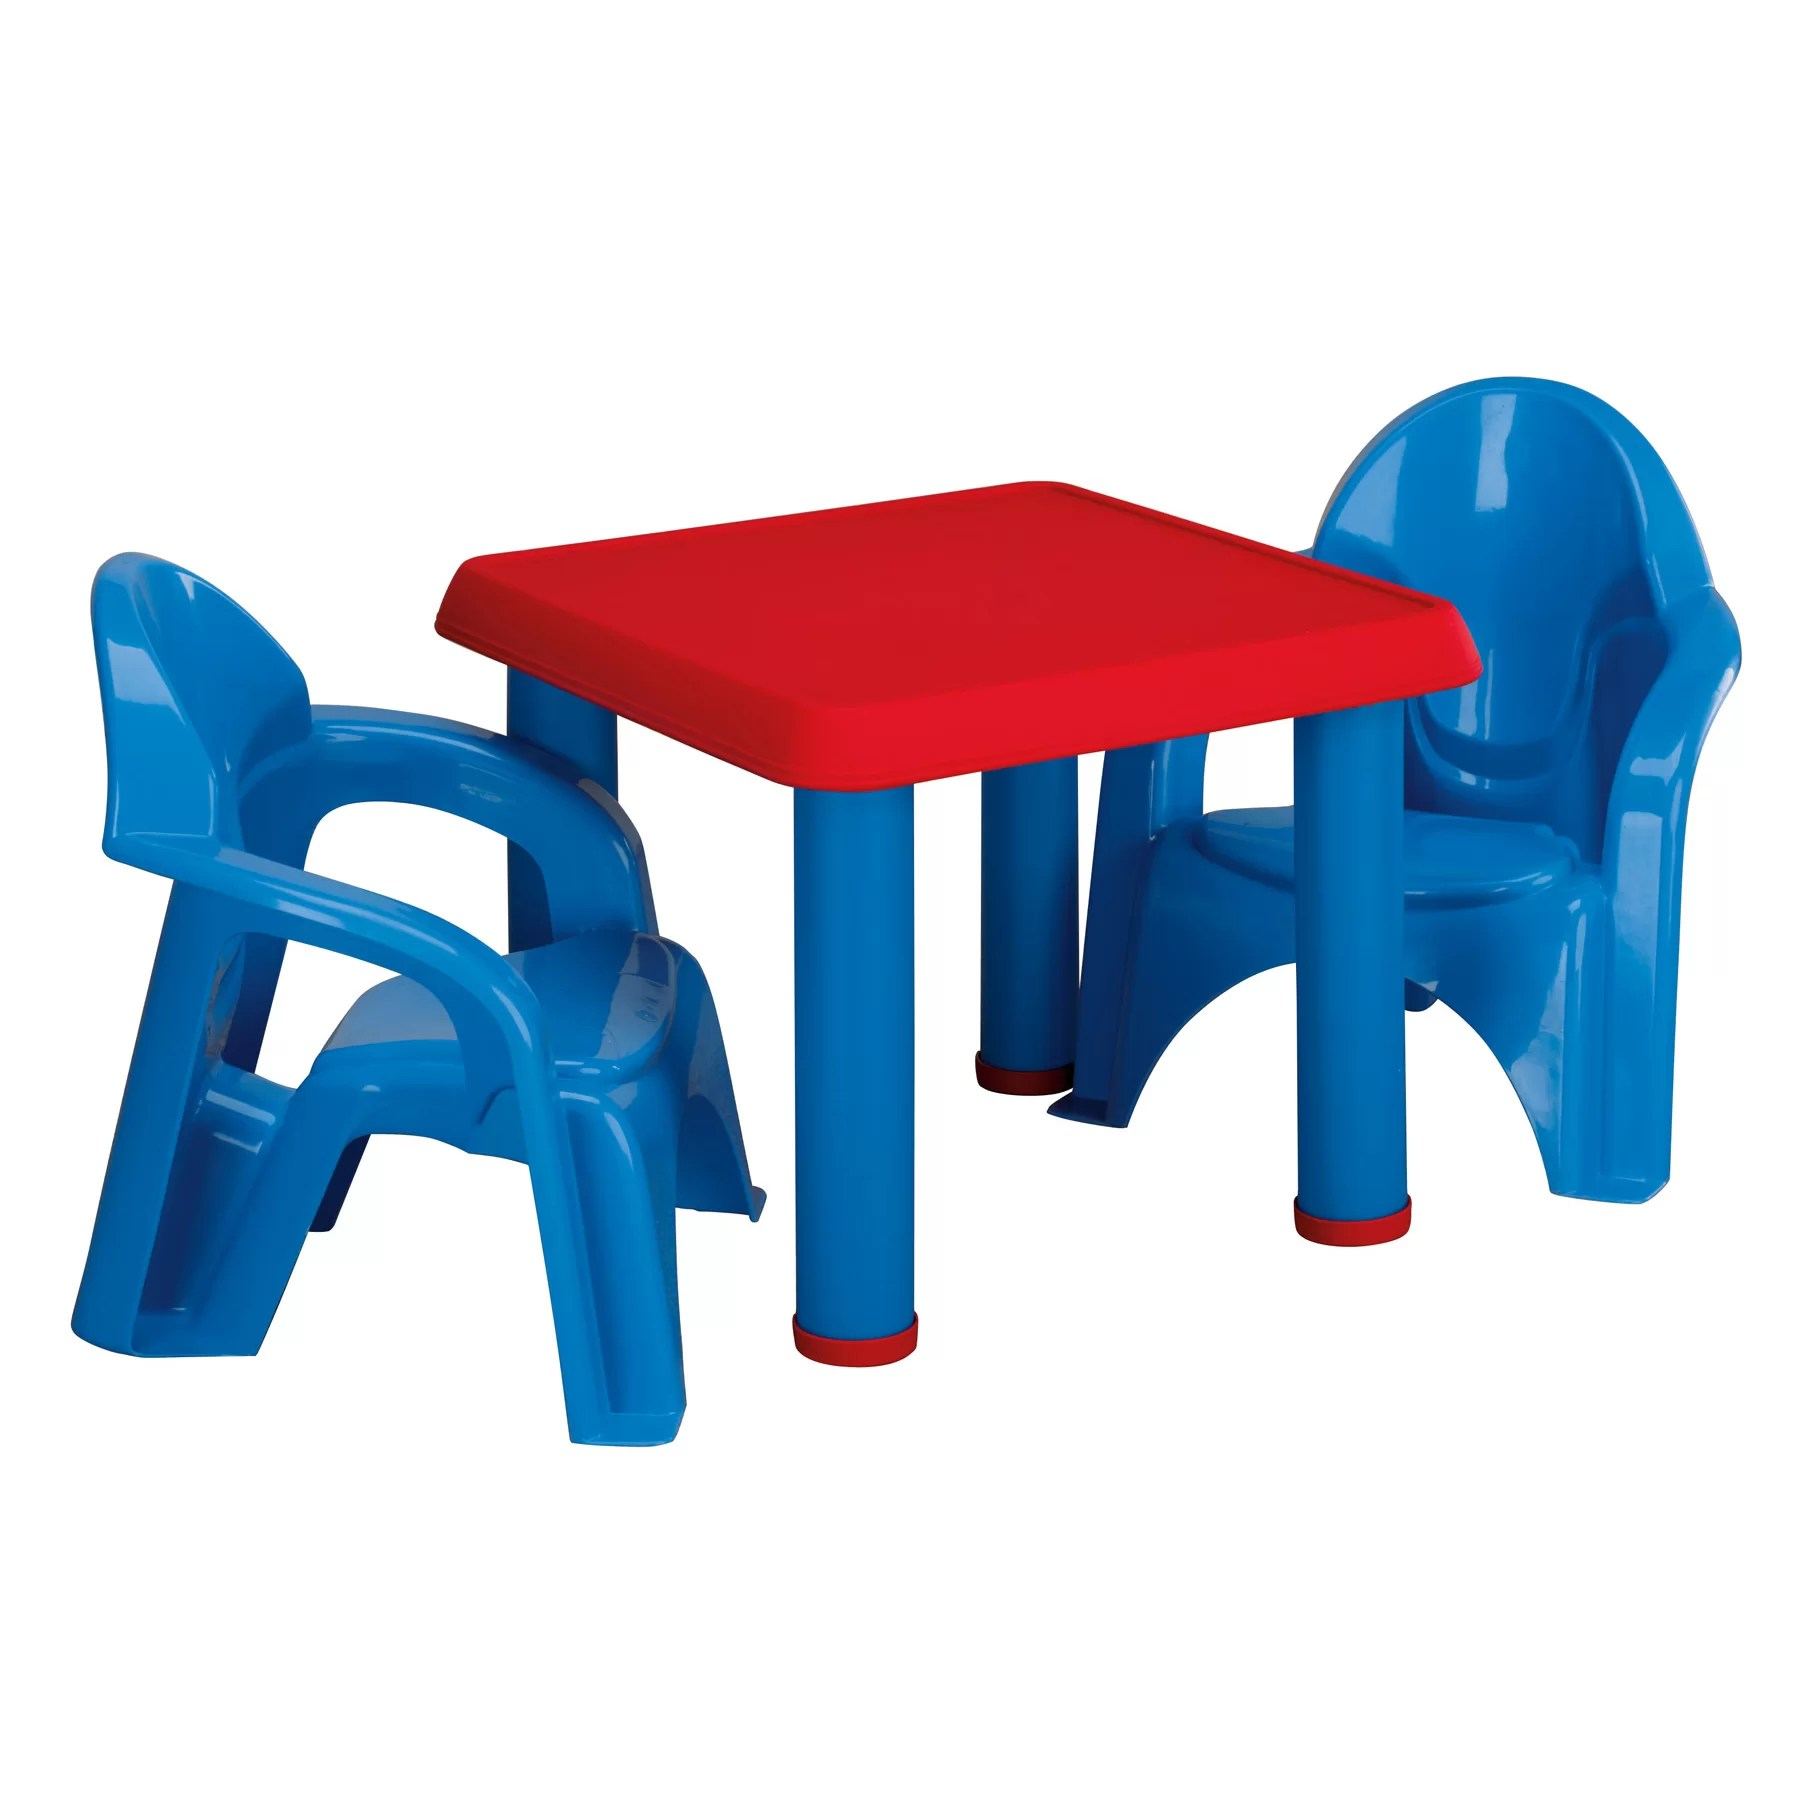 Plastic Table And Chairs For Kids American Plastic Toys Kids 3 Piece Table And Chair Set